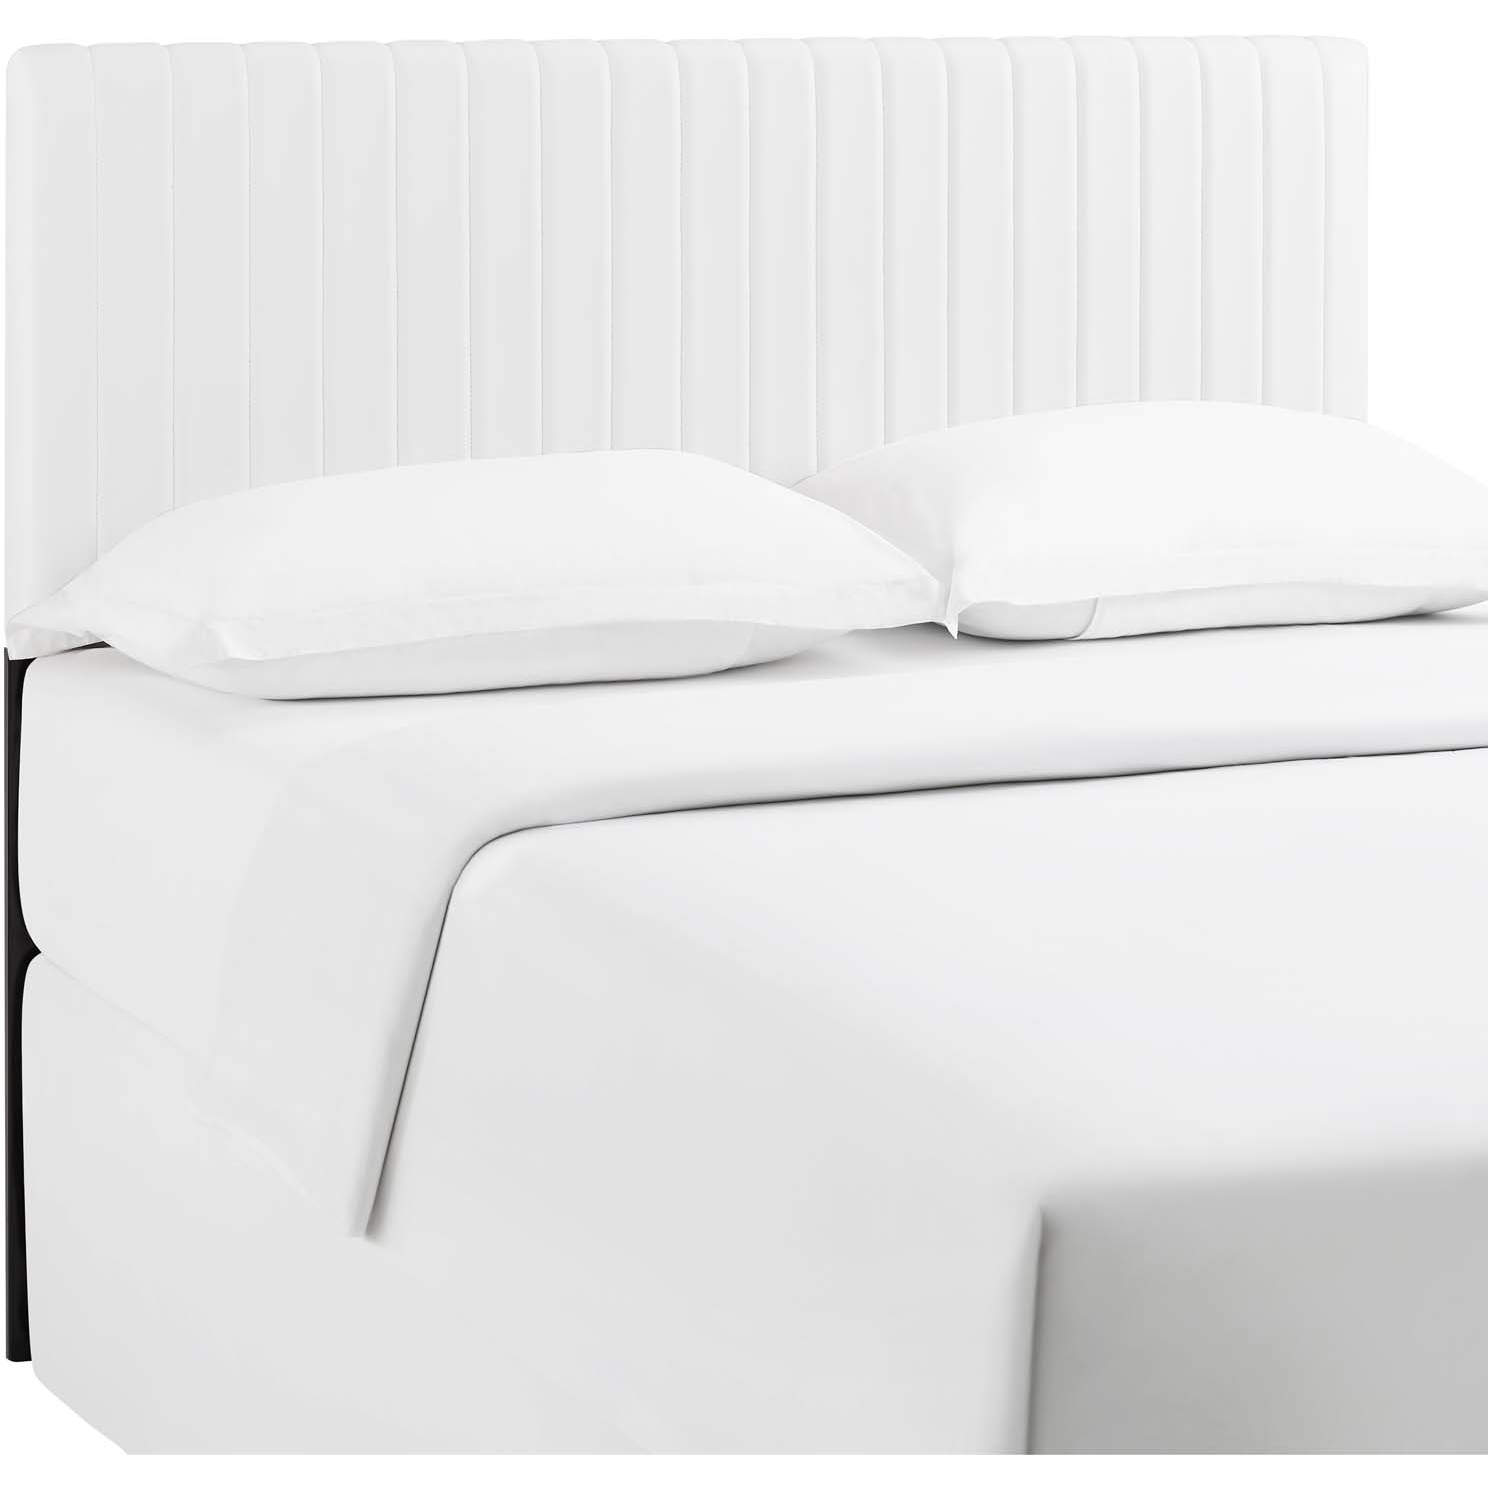 Modway Mod 6098 Whi Keira King Ca King Headboard In Channel Tufted White Leatherette